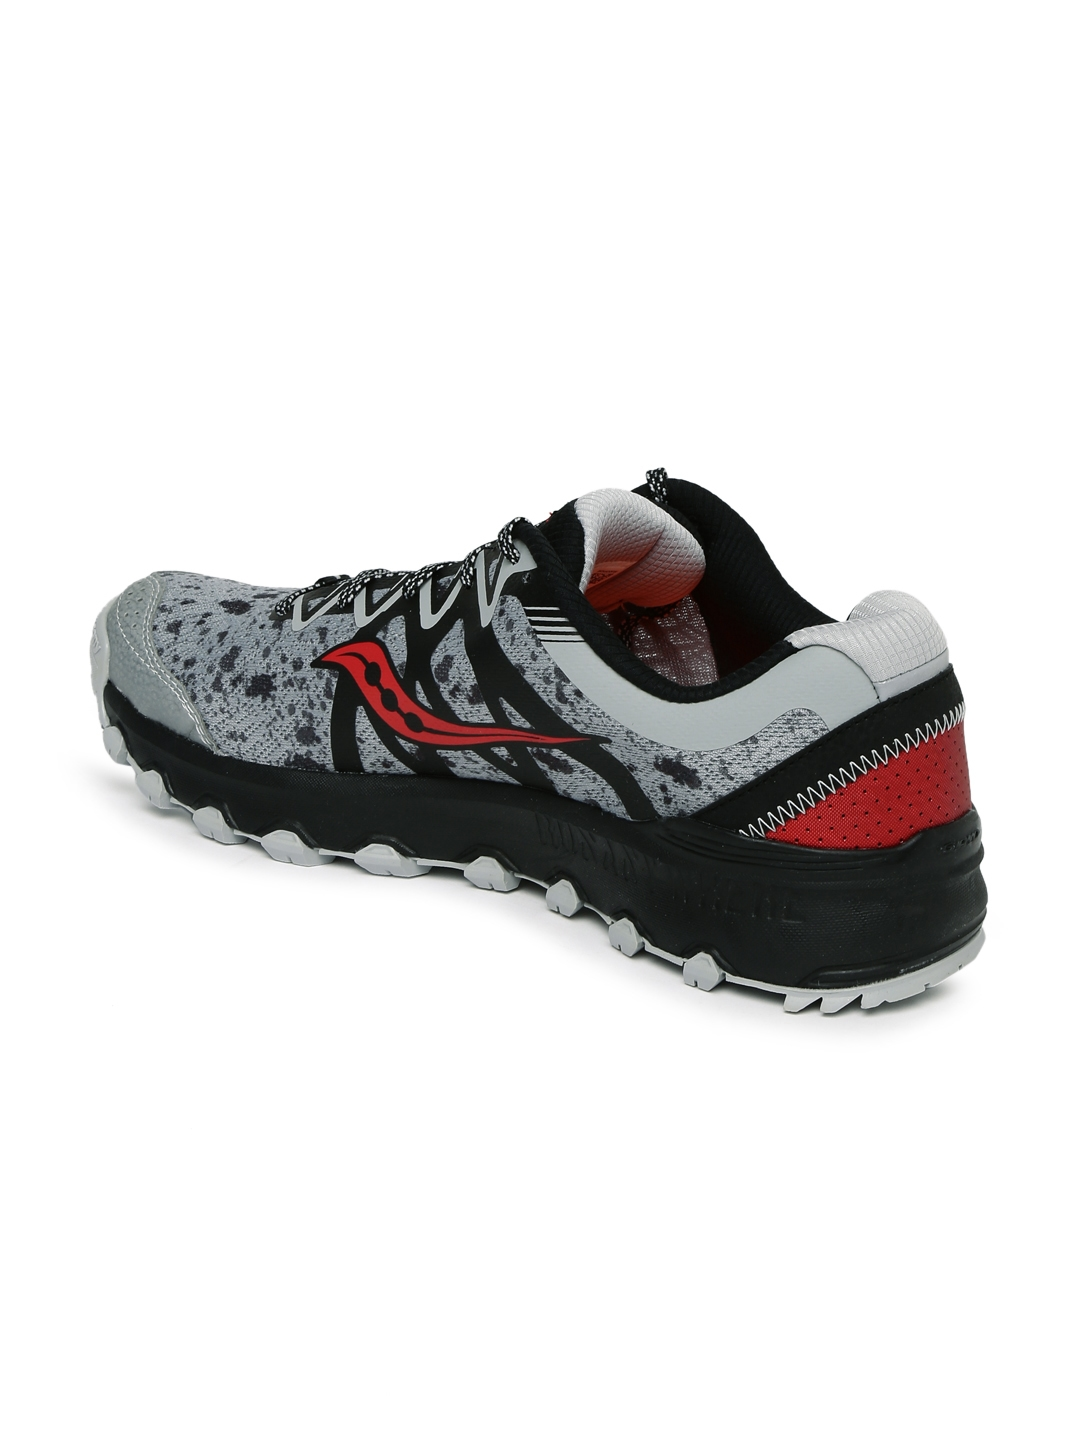 5eee1f9119 Buy Saucony Men Grey GRID CALIBER TR Running Shoes - Sports Shoes ...